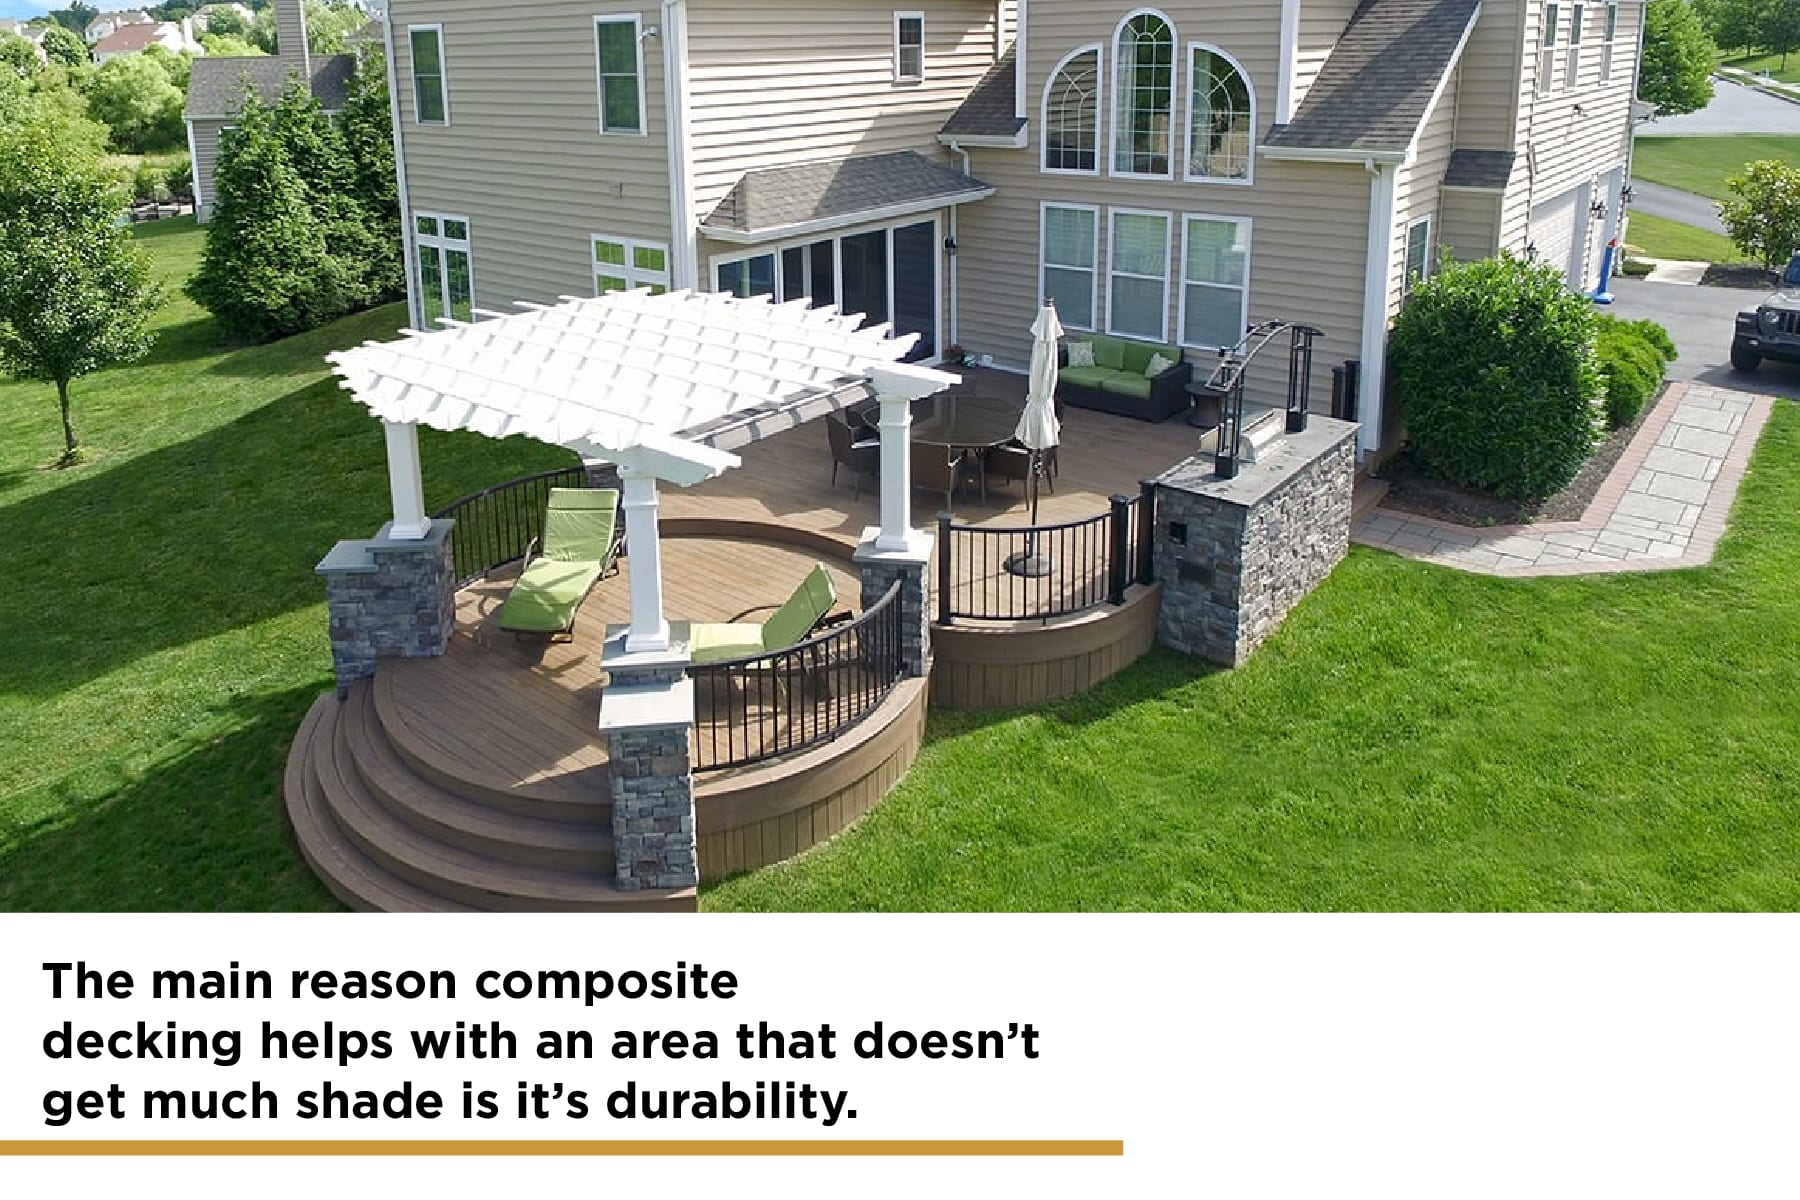 composite decking is very durable and needs less shade